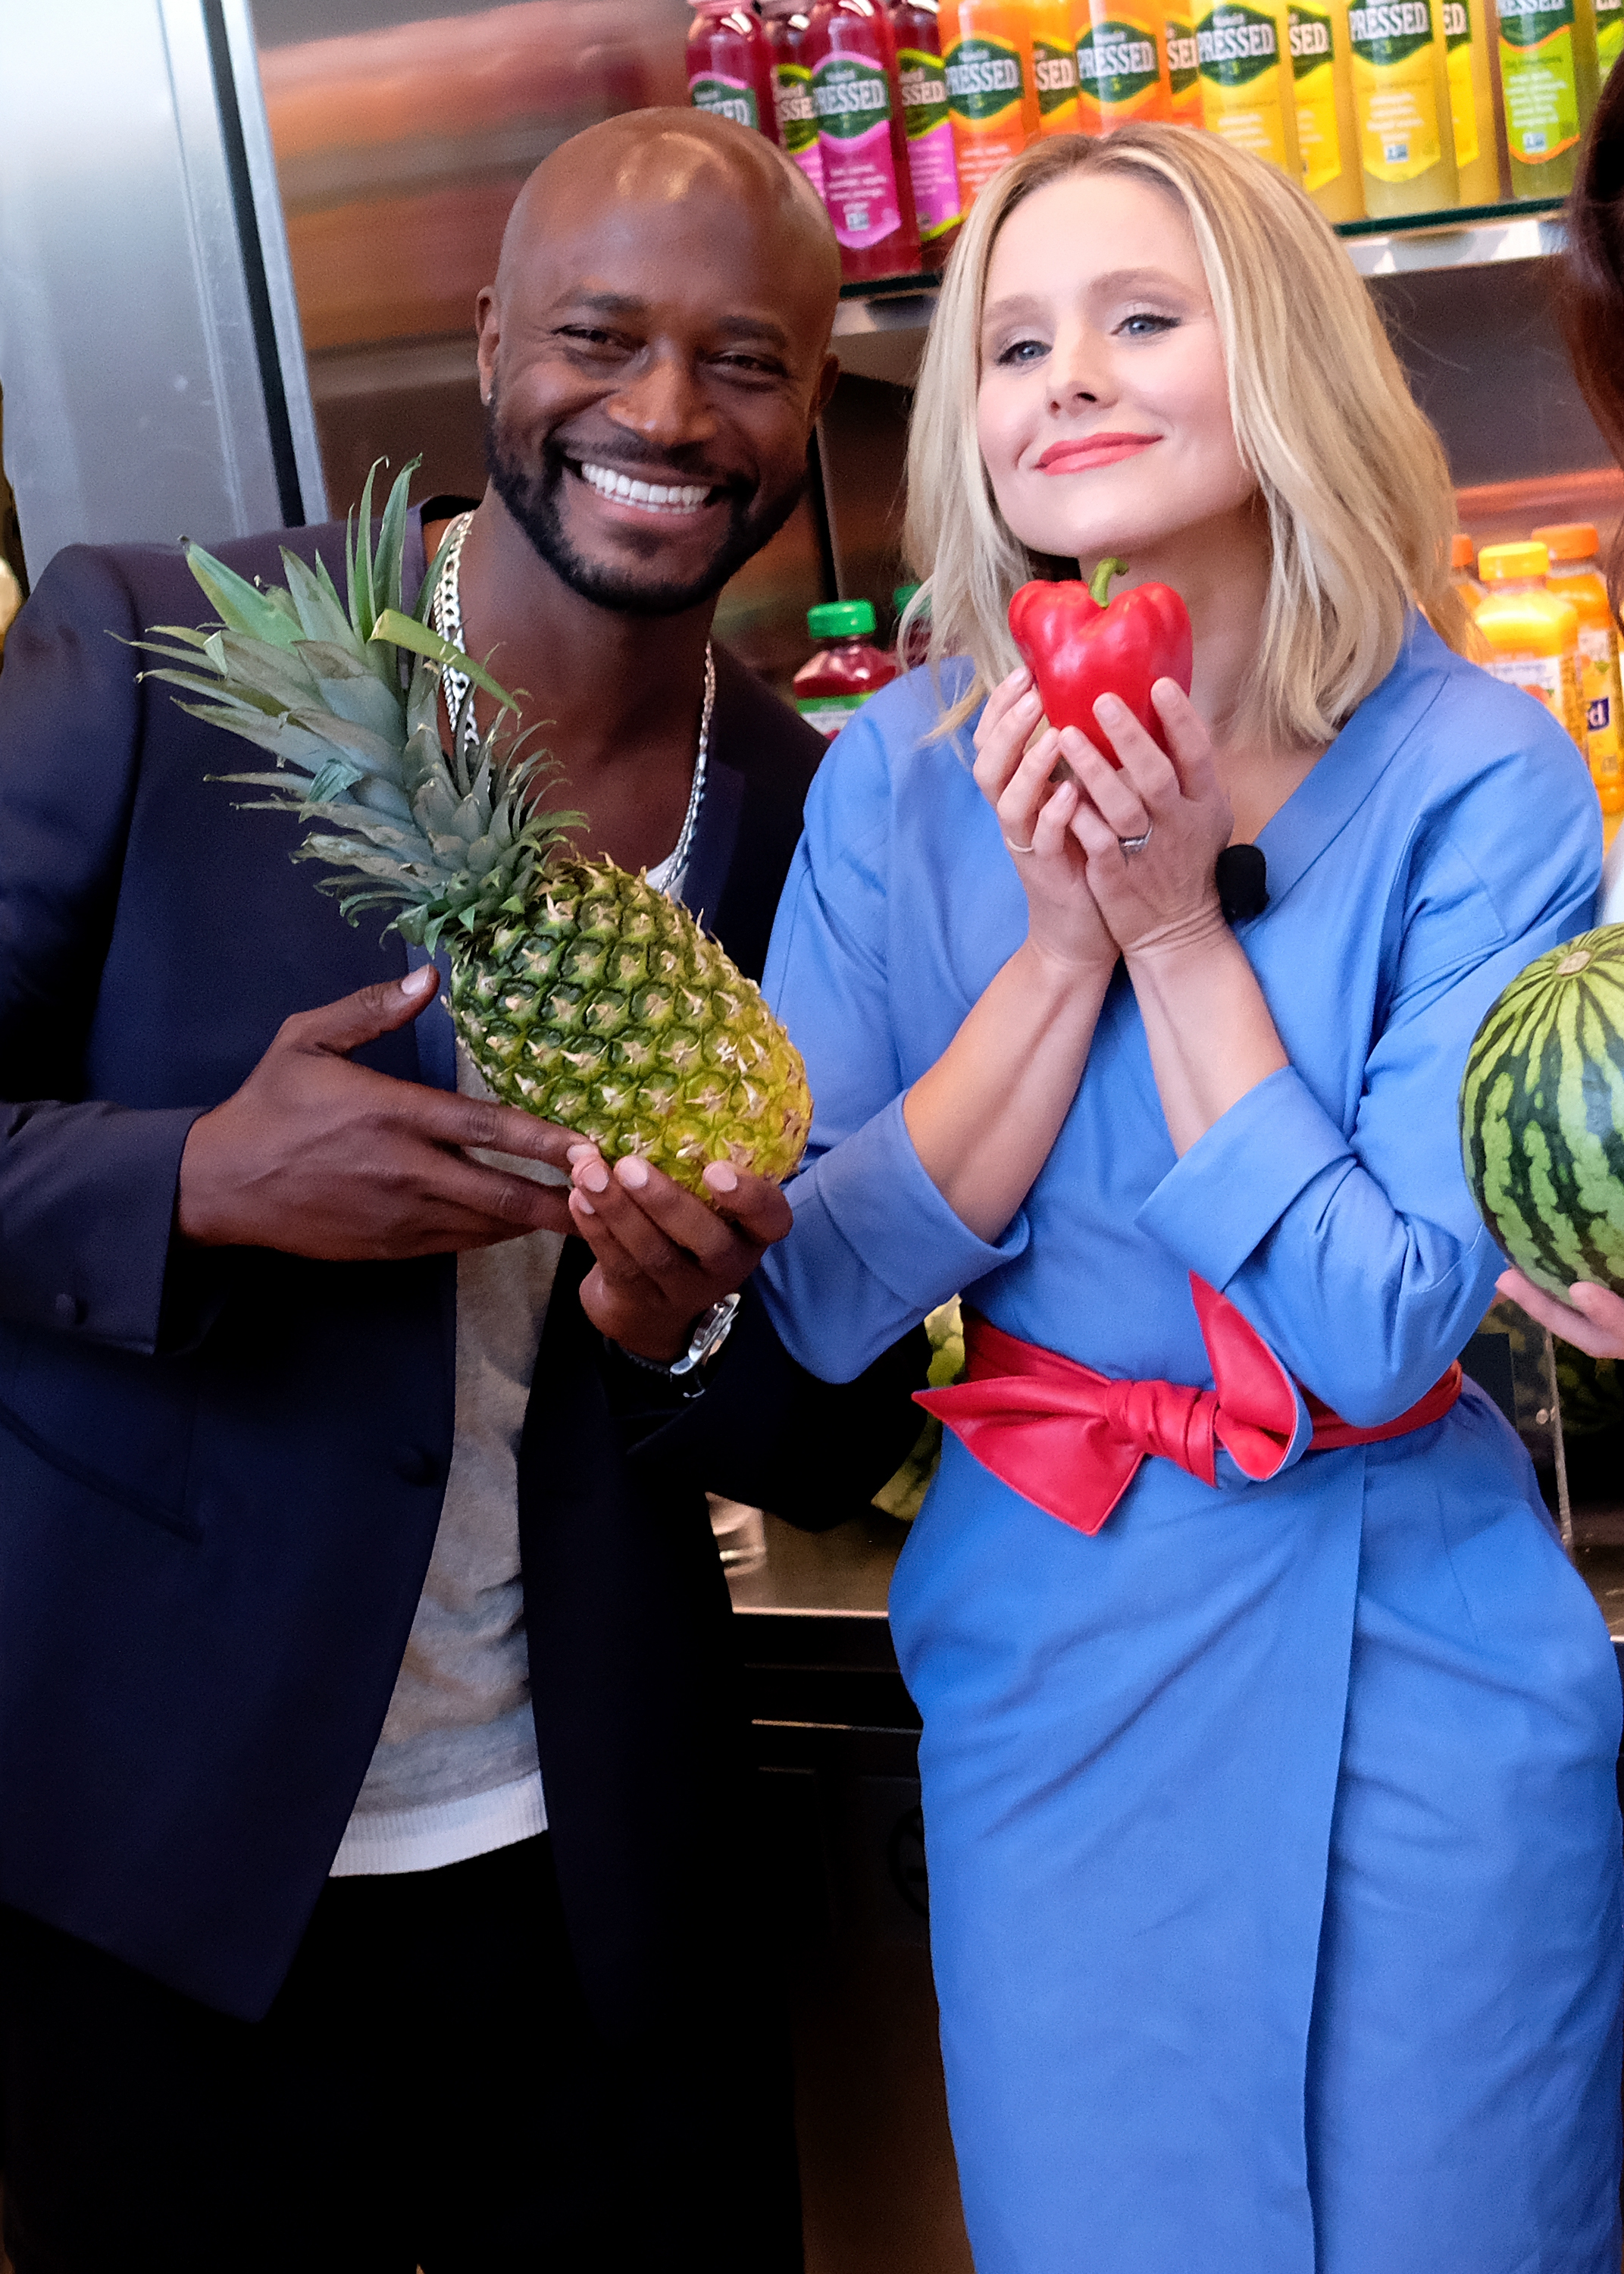 Taye Diggs and Kristen Bell attends the 2017 #DrinkGoodDoGood Campaign Launch at Little River in New York City on Aug. 9, 2017.